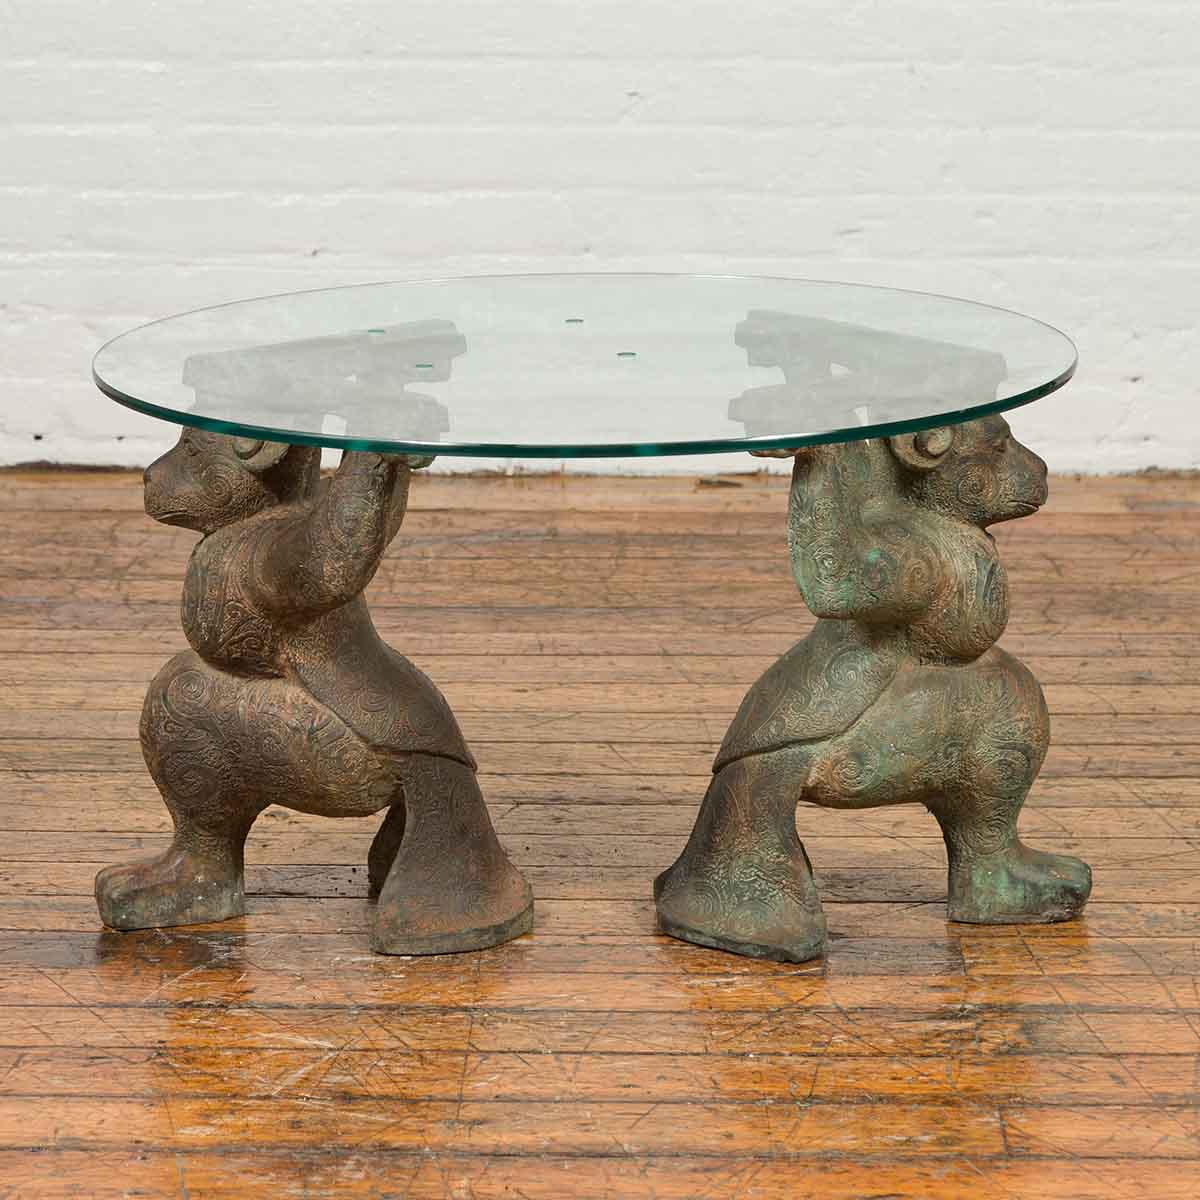 Vintage Bronze Double Monkey Coffee Table Base with Verde Patina